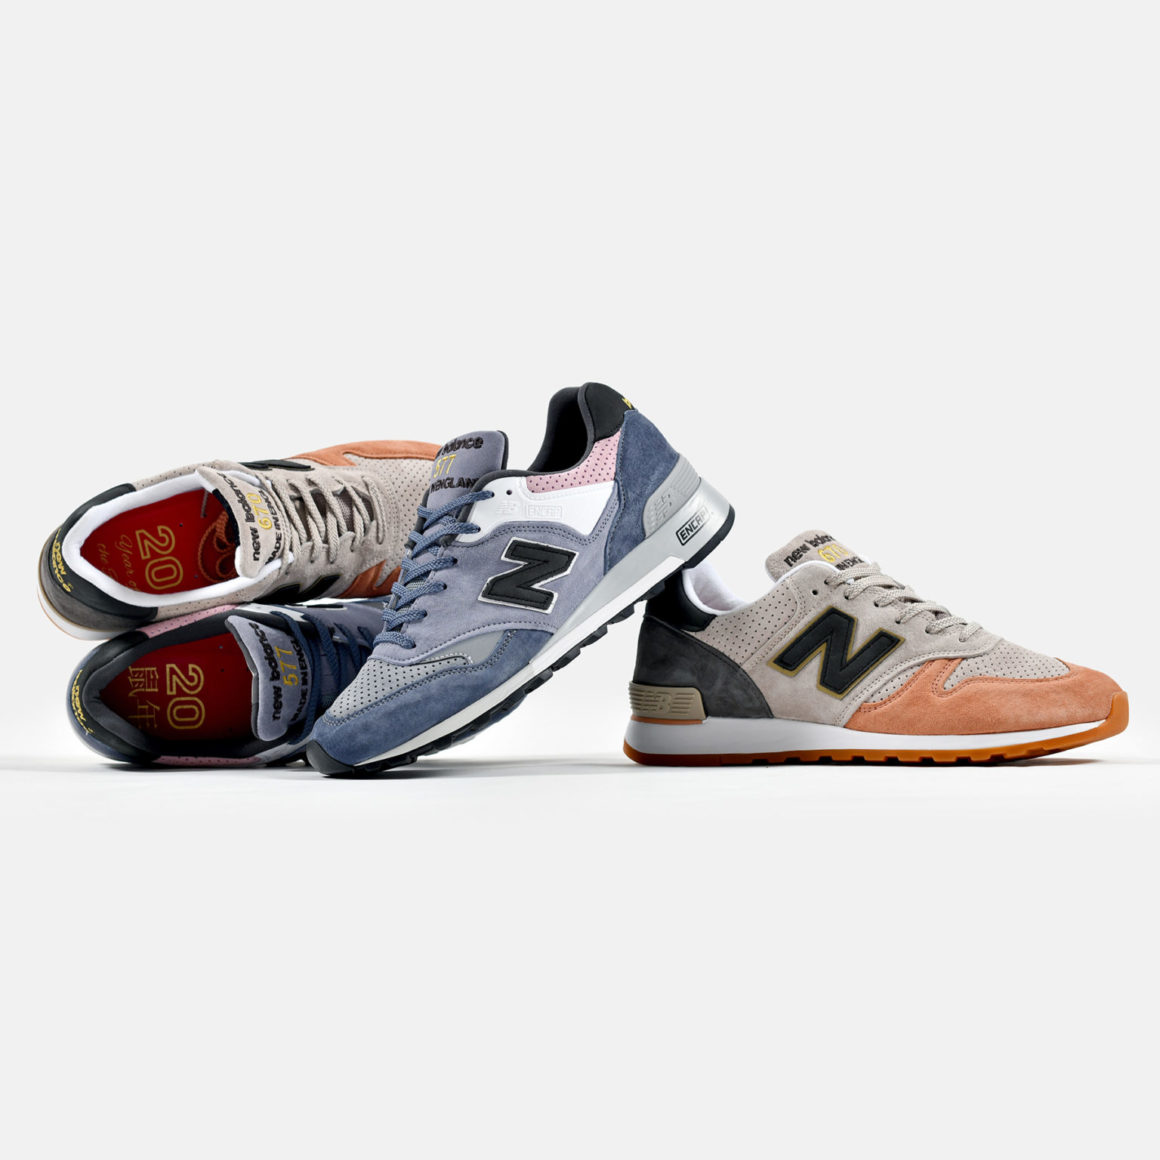 New Balance Year of the Rat pack